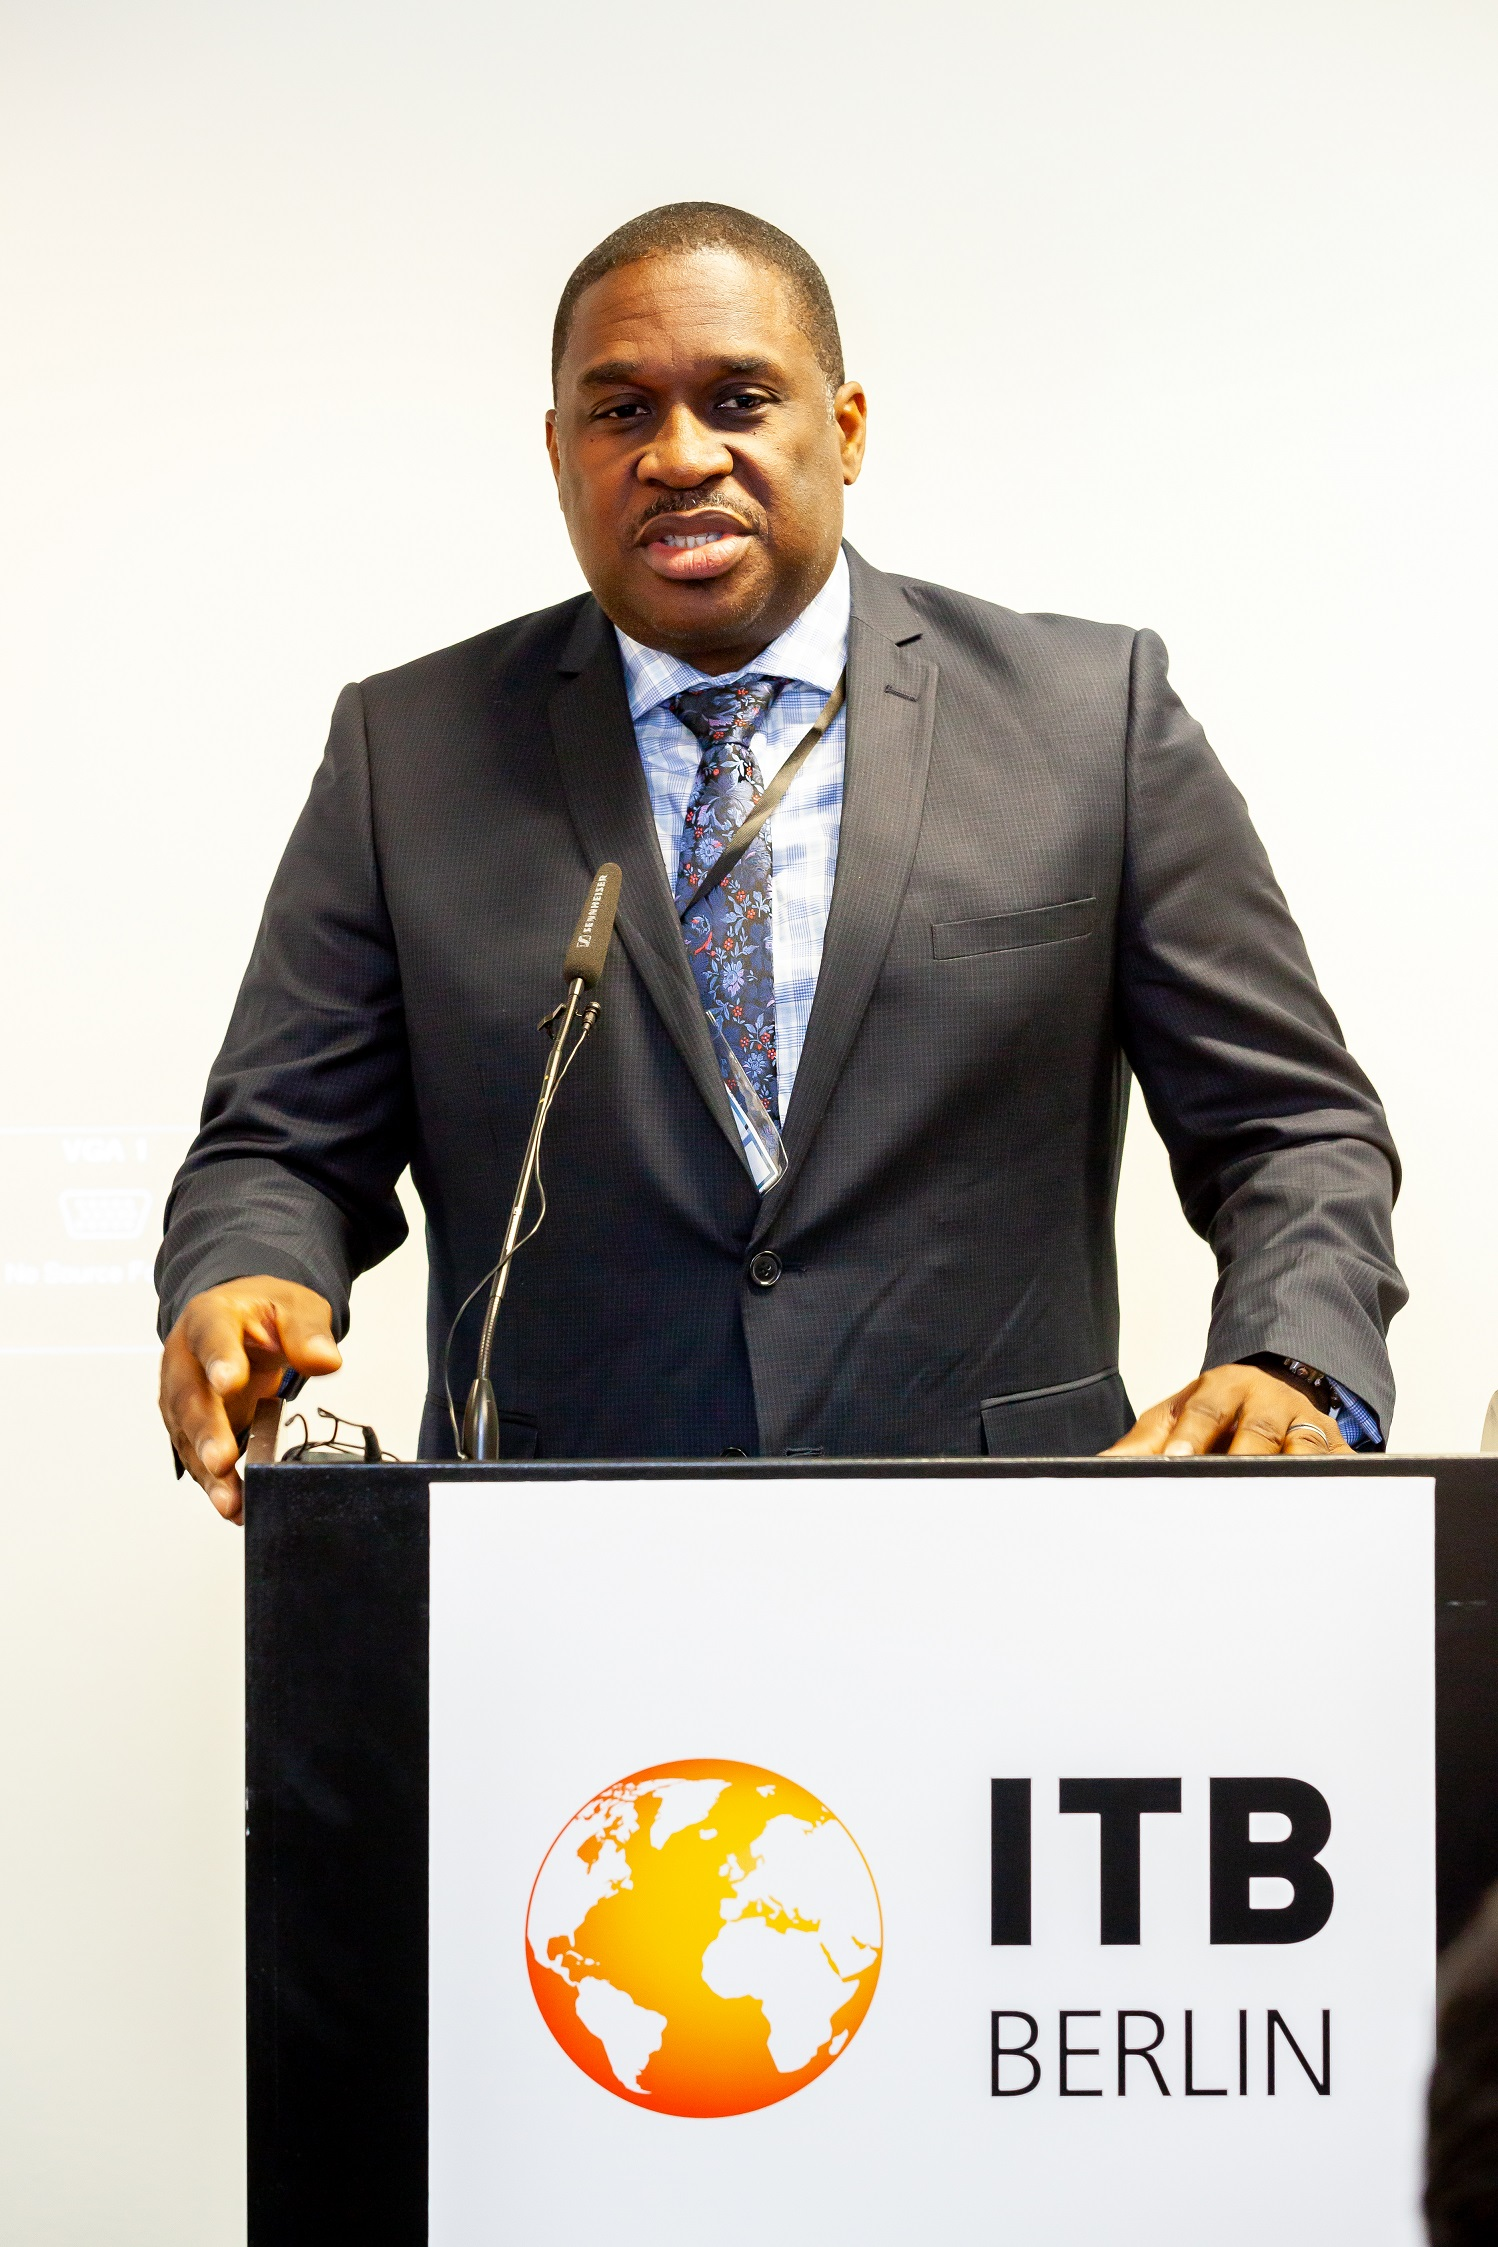 Louis Lewis, CEO of the Tobago Tourism Agency Limited addresses media and stakeholders in Berlin, Germany in this file photo from March 2019